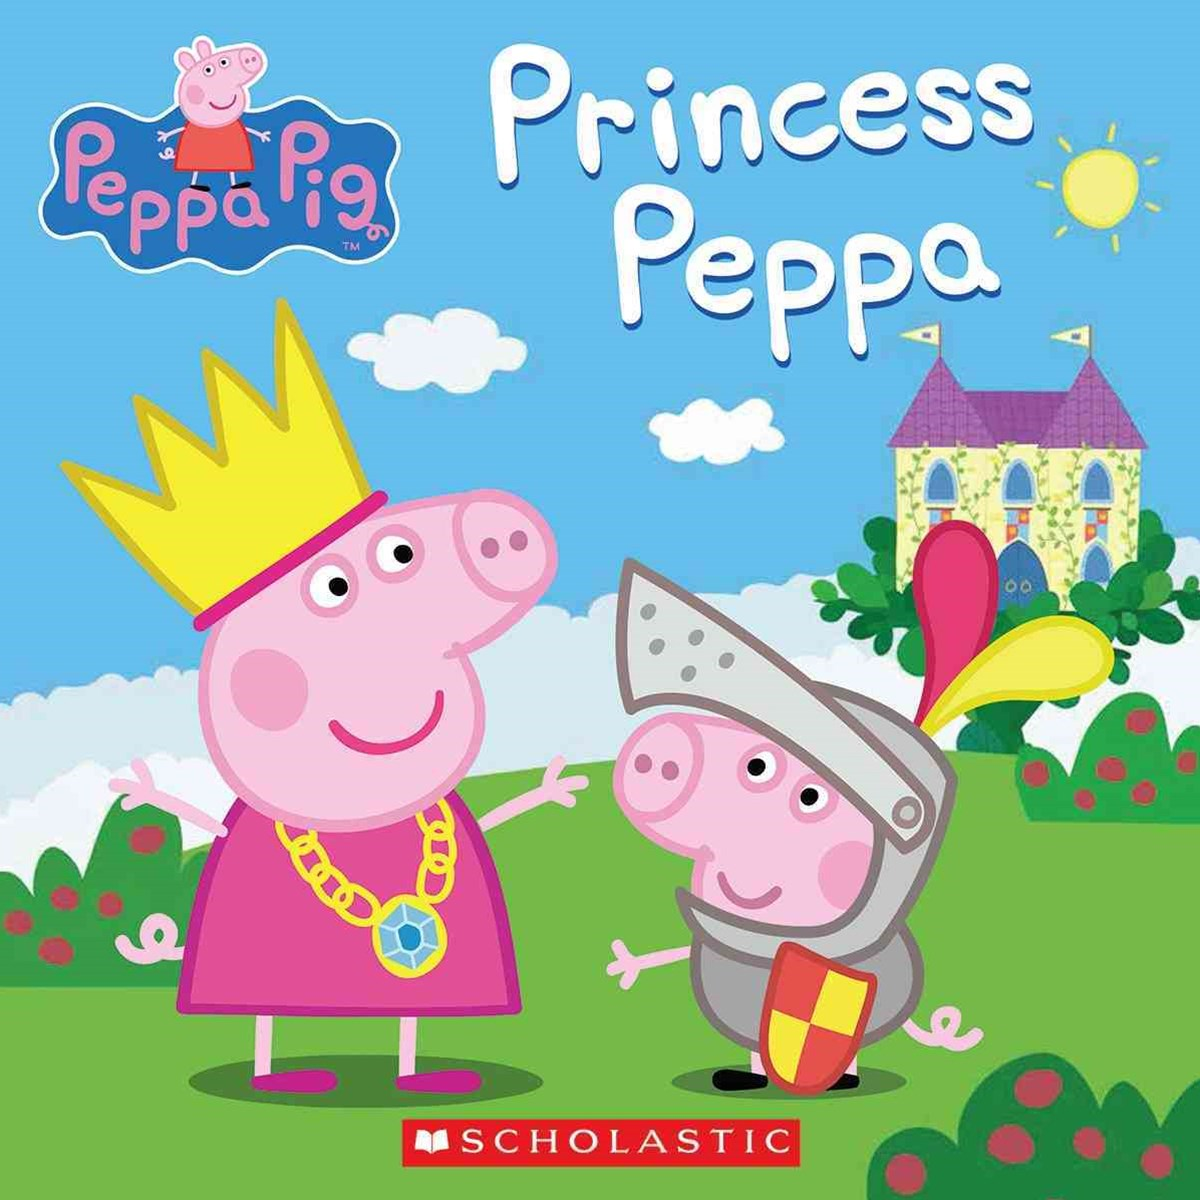 Princess Peppa